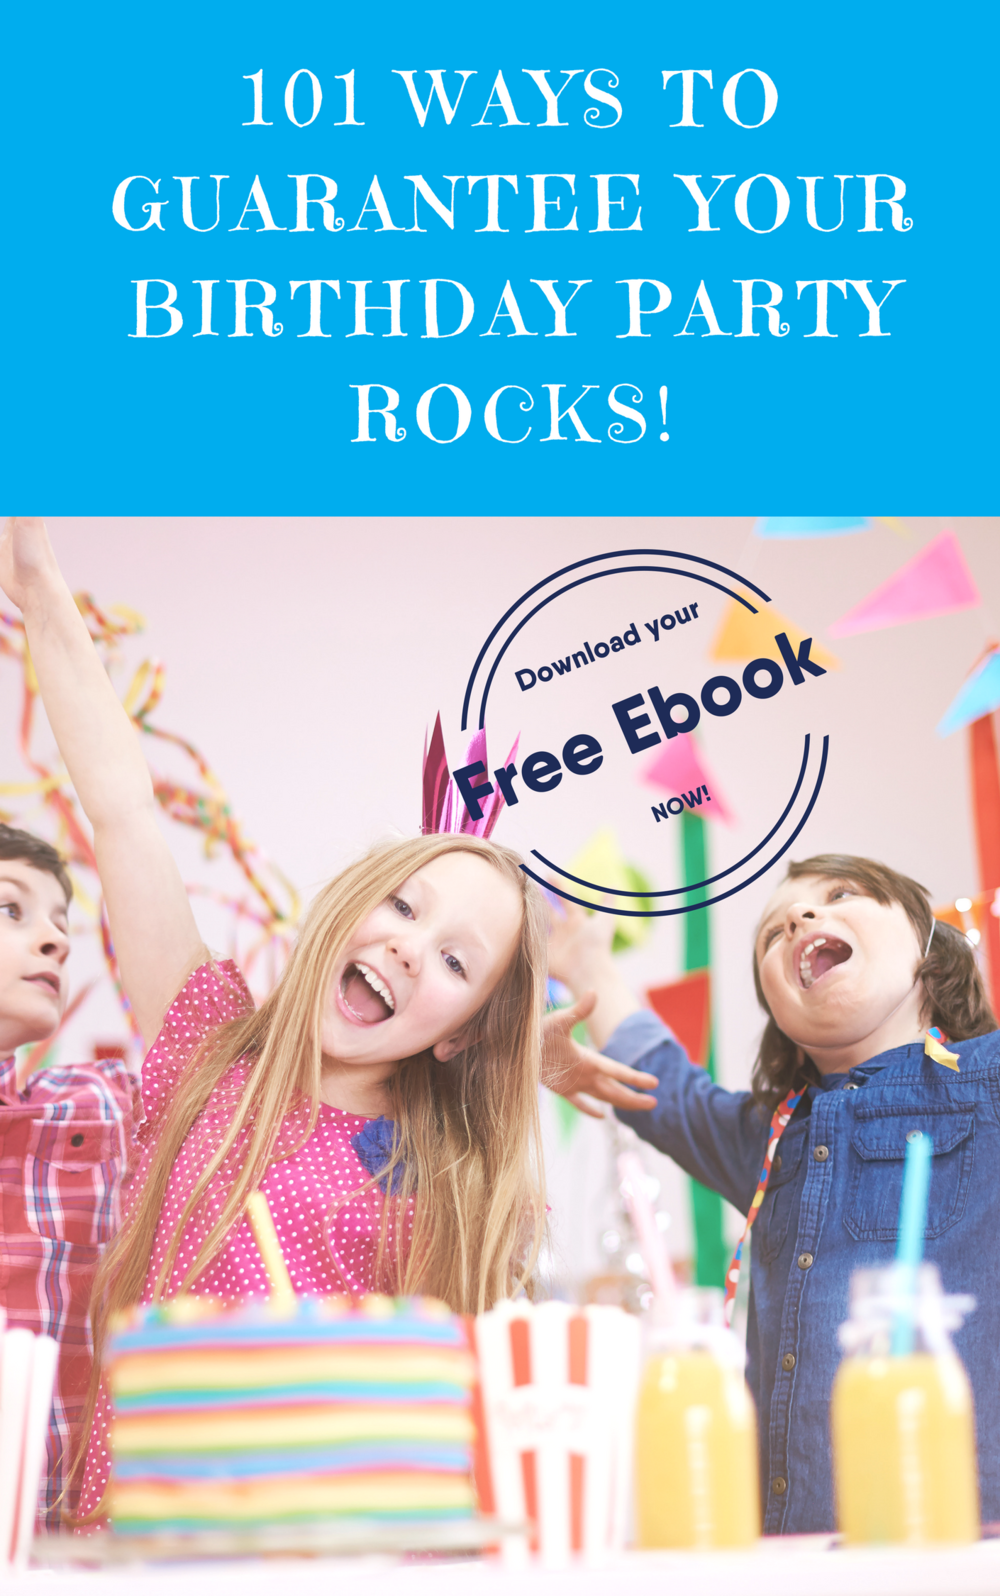 101 ways to GUARANTEEyour birthday party rocks! (1).png